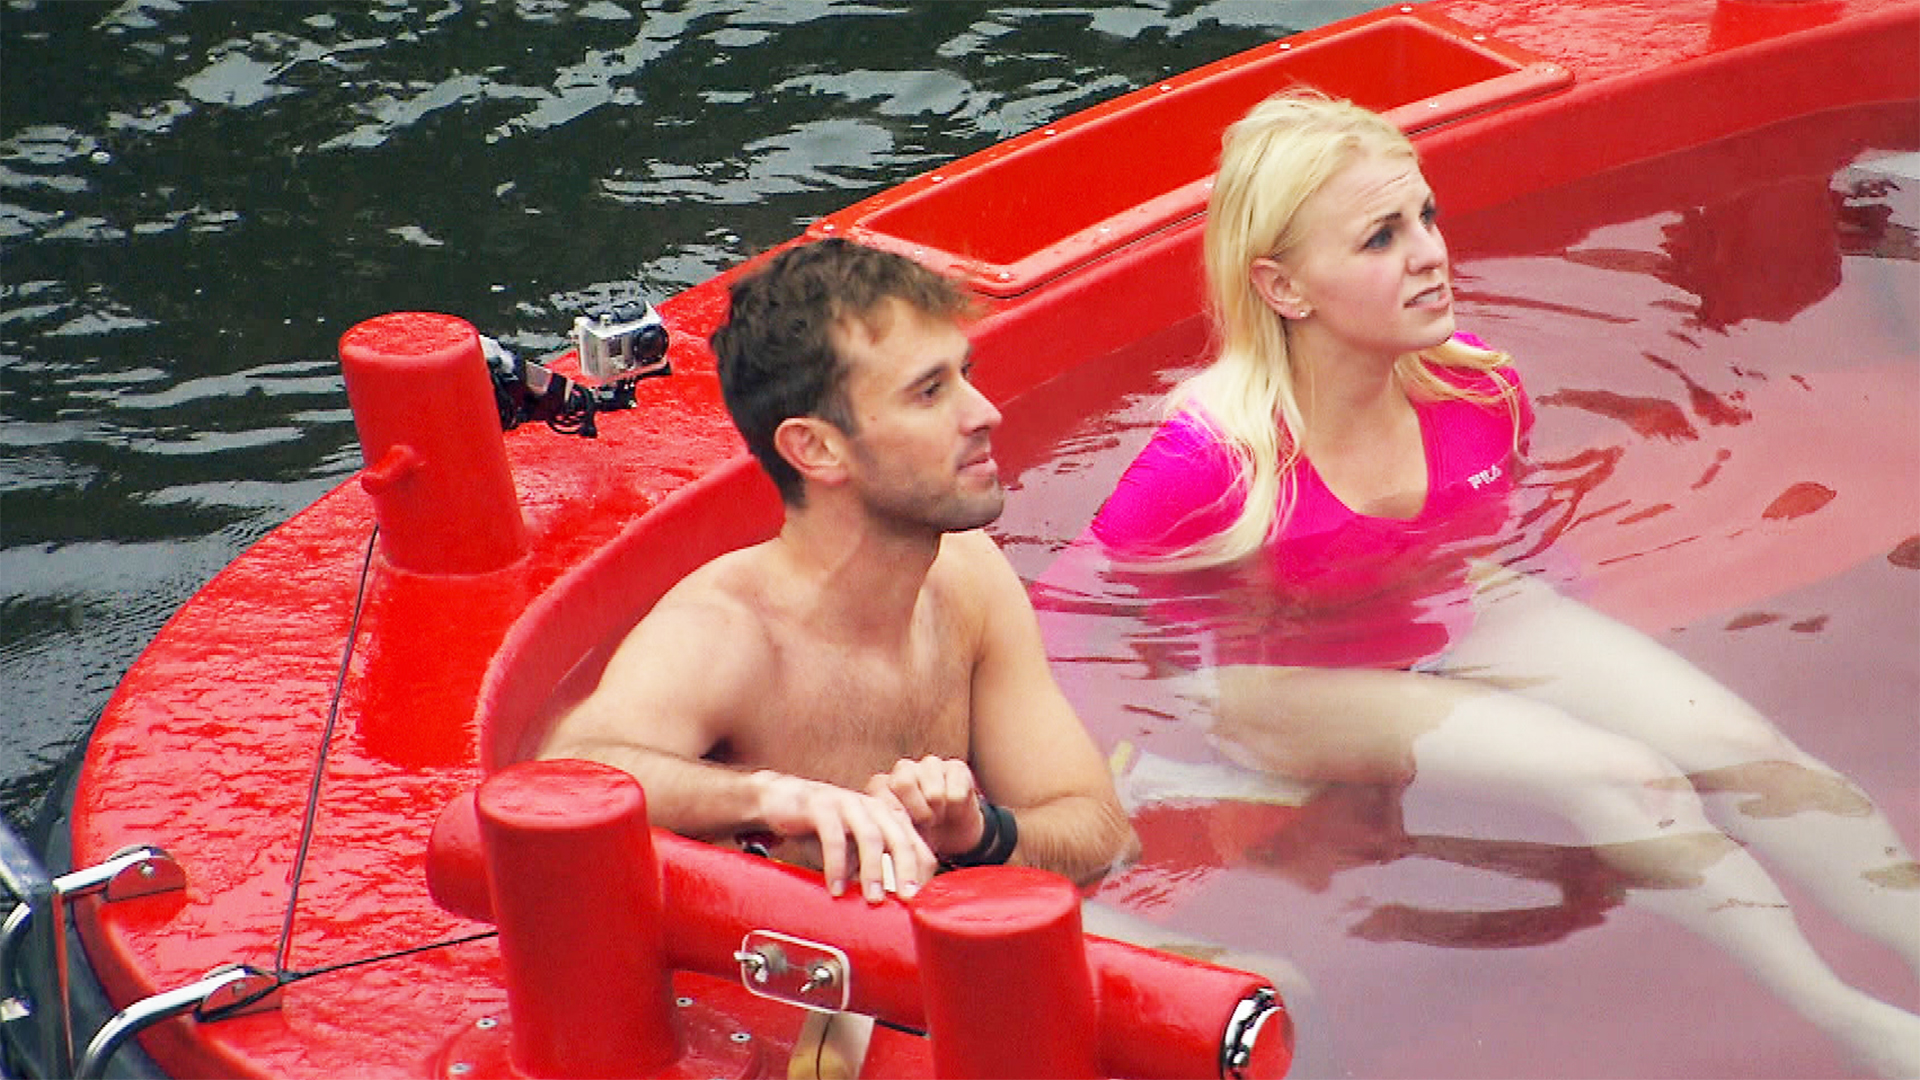 amazing race blind date couples still dating Couples on the longest blind date ever head to the finish line on the amazing race season 26 finale -- find out what host phil keoghan thinks of the experiment.